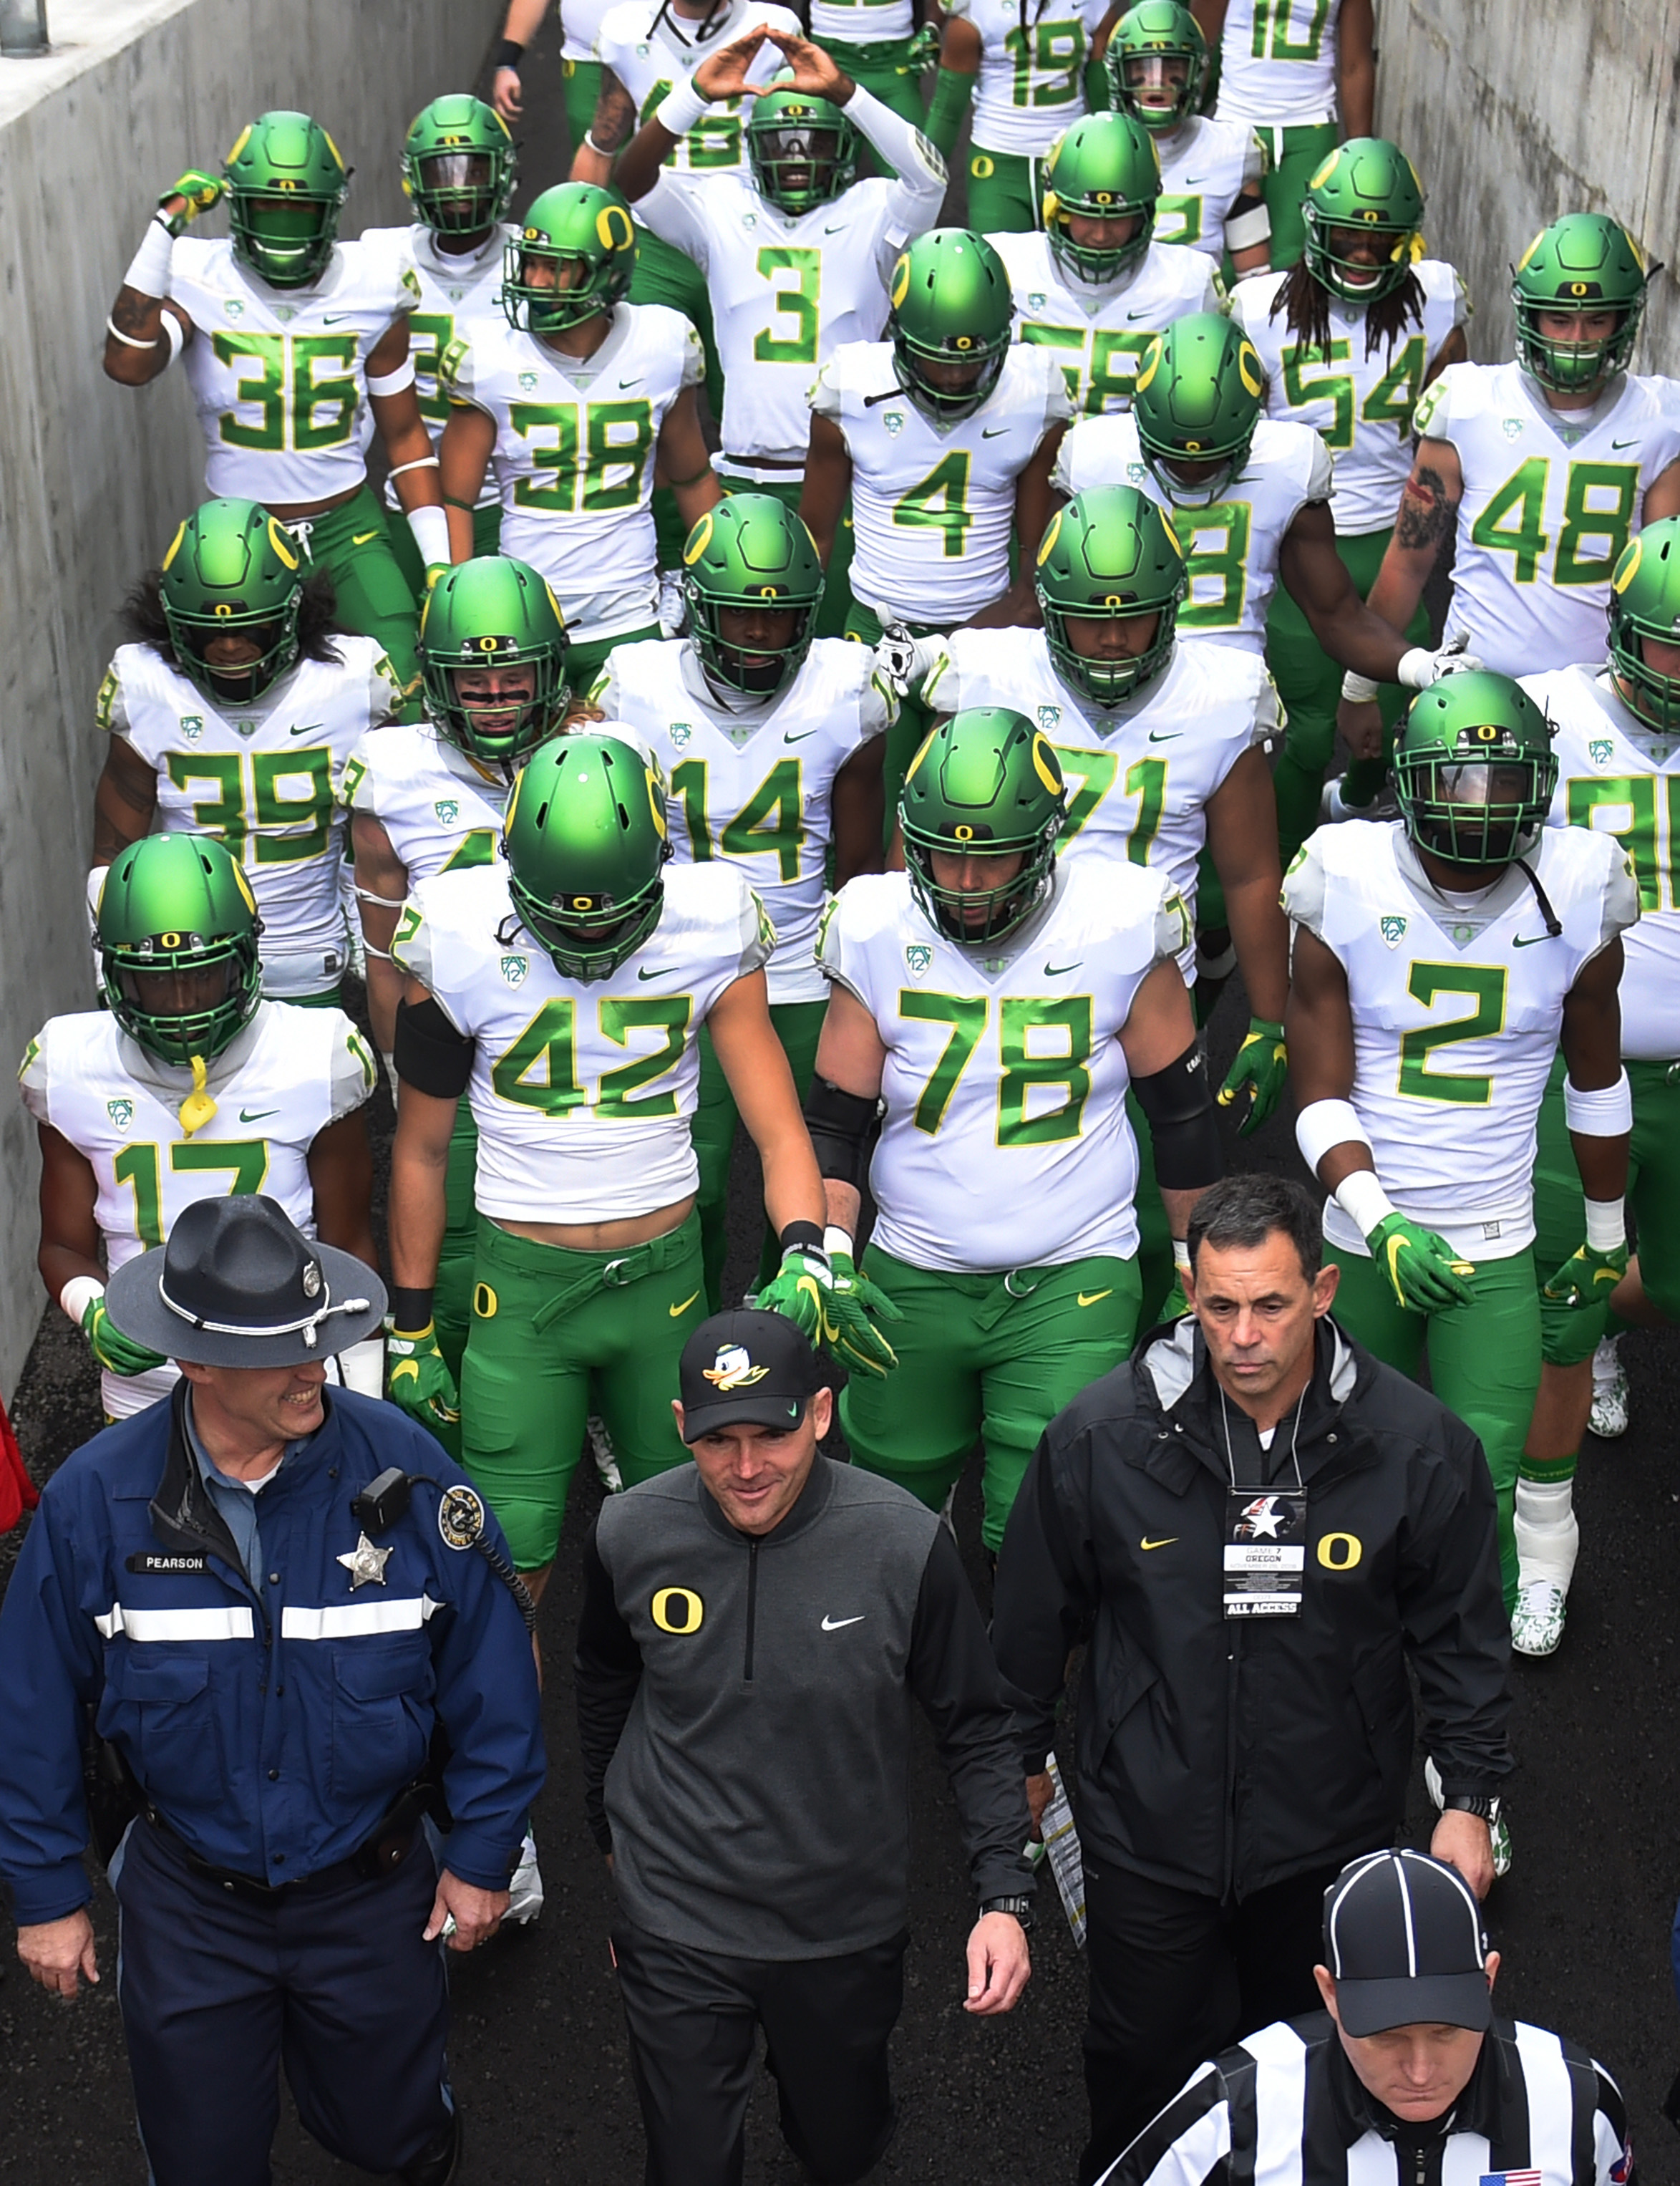 Oregon football committed one of the least interesting NCAA violations ever